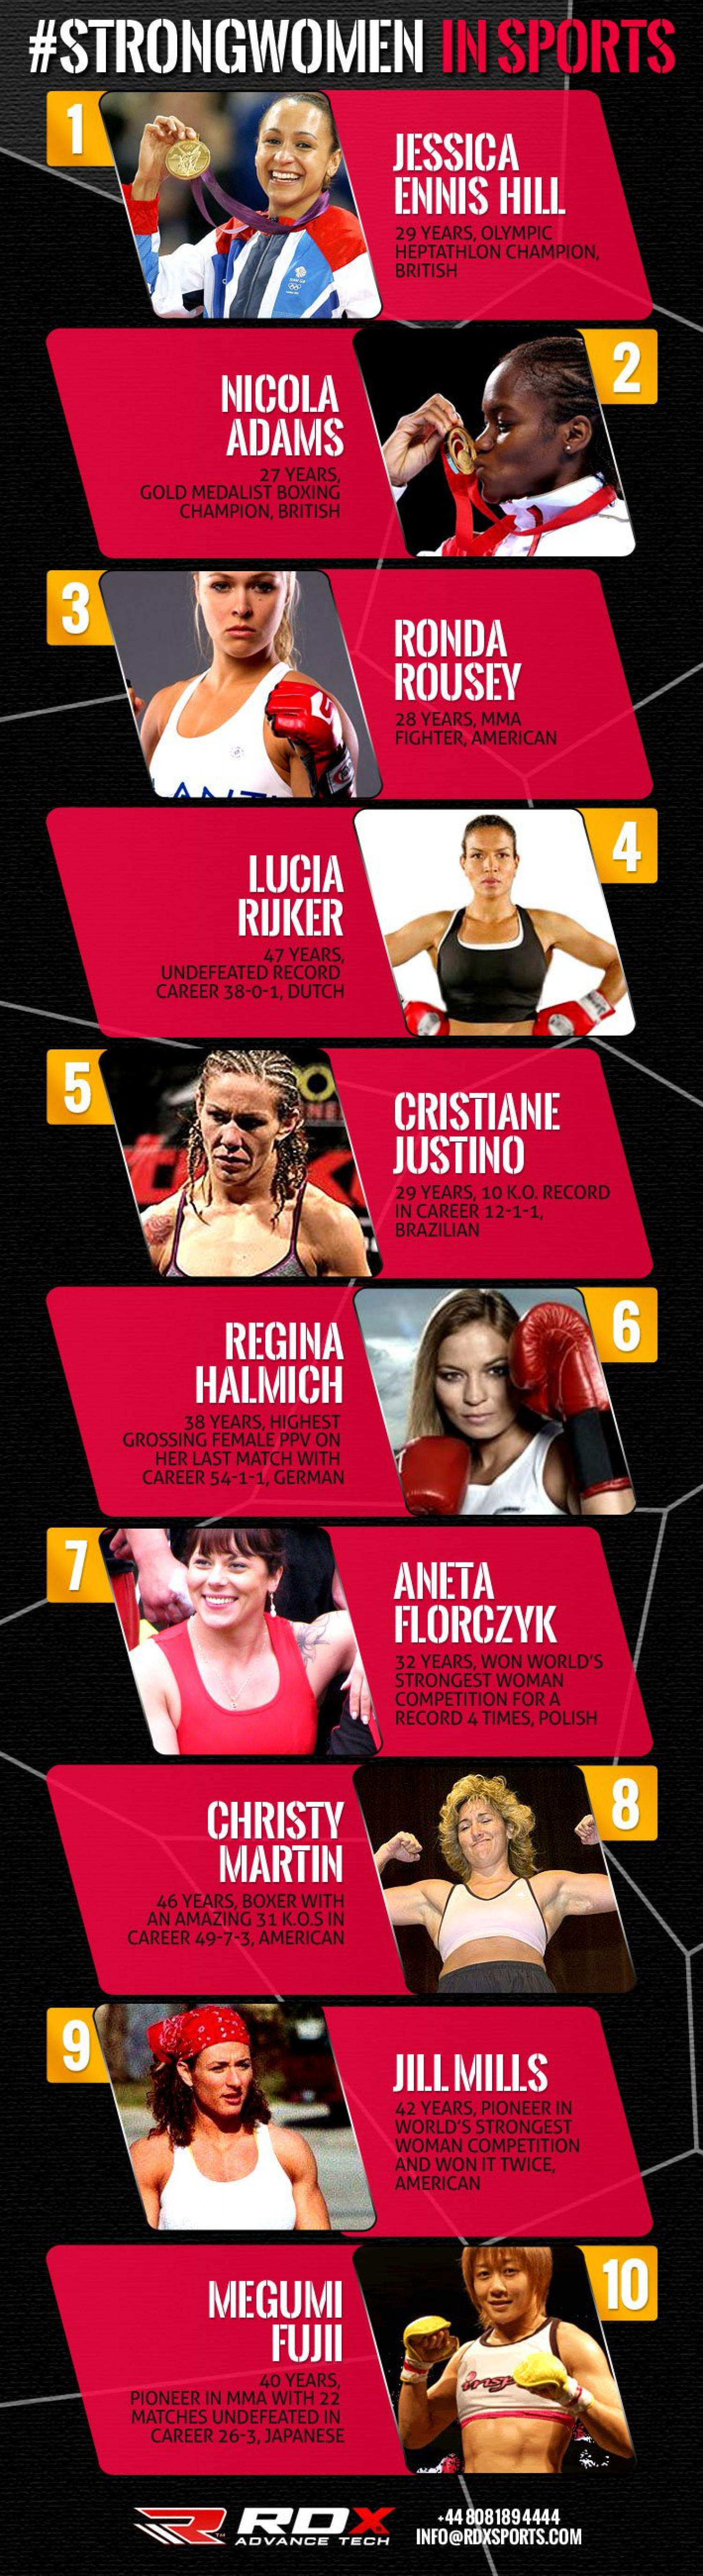 Strong Women In Sports Infographic